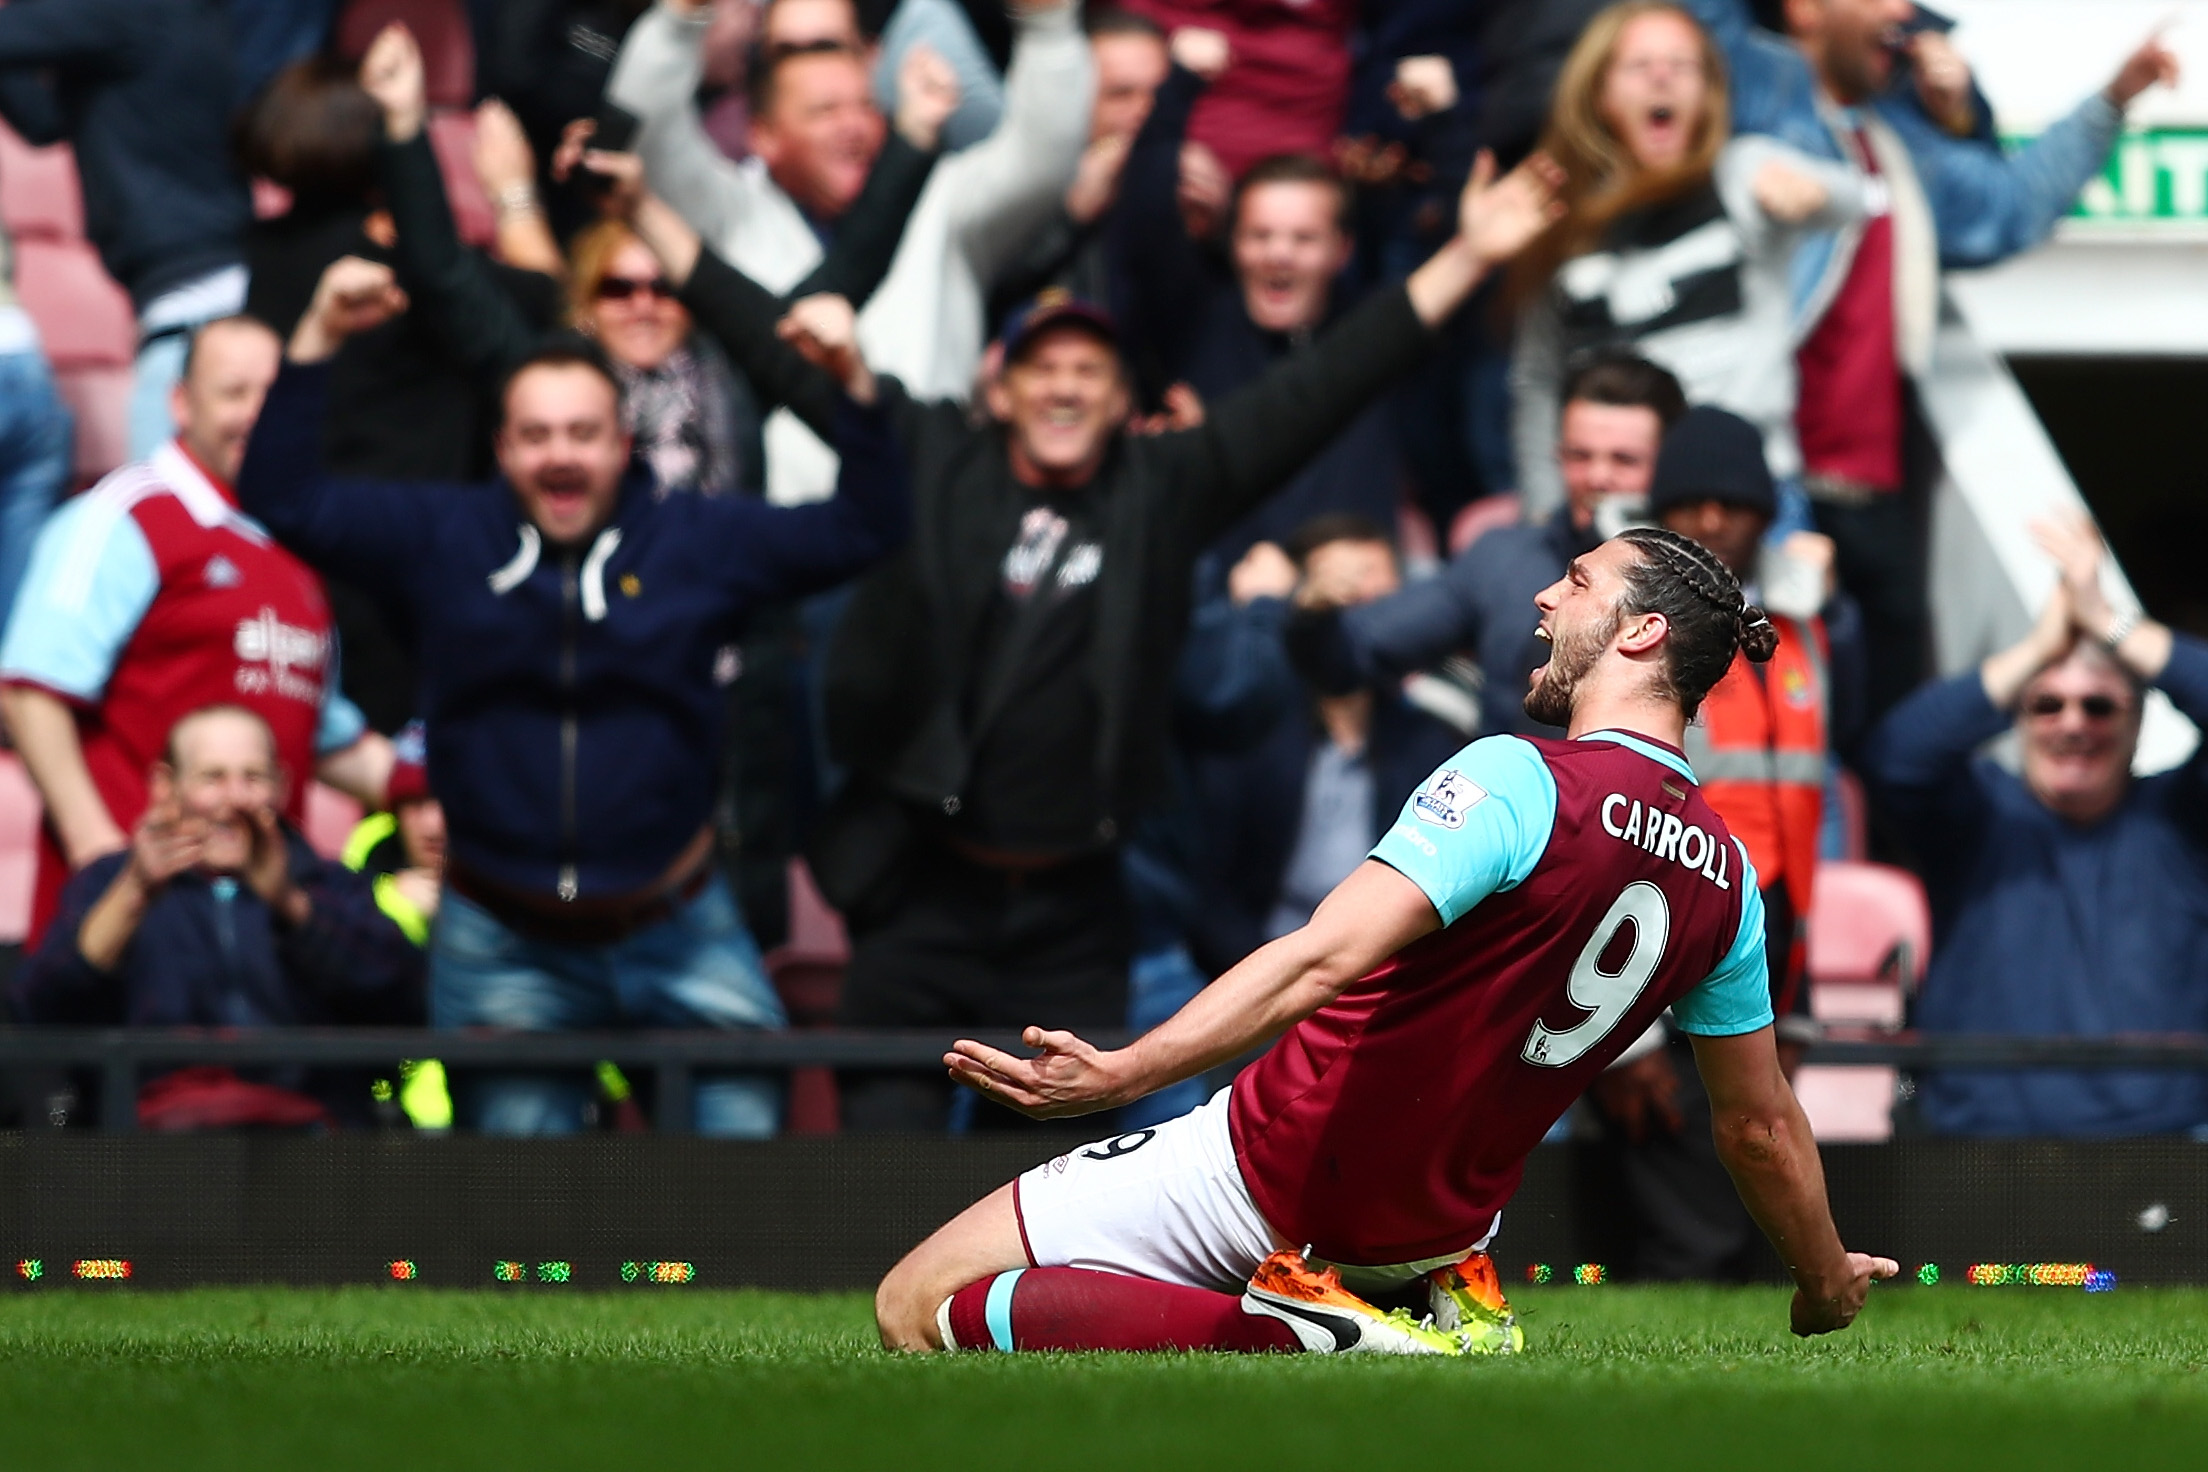 West Ham striker Andy Carroll reveals his girlfriend tried to sell Arsenal match ball